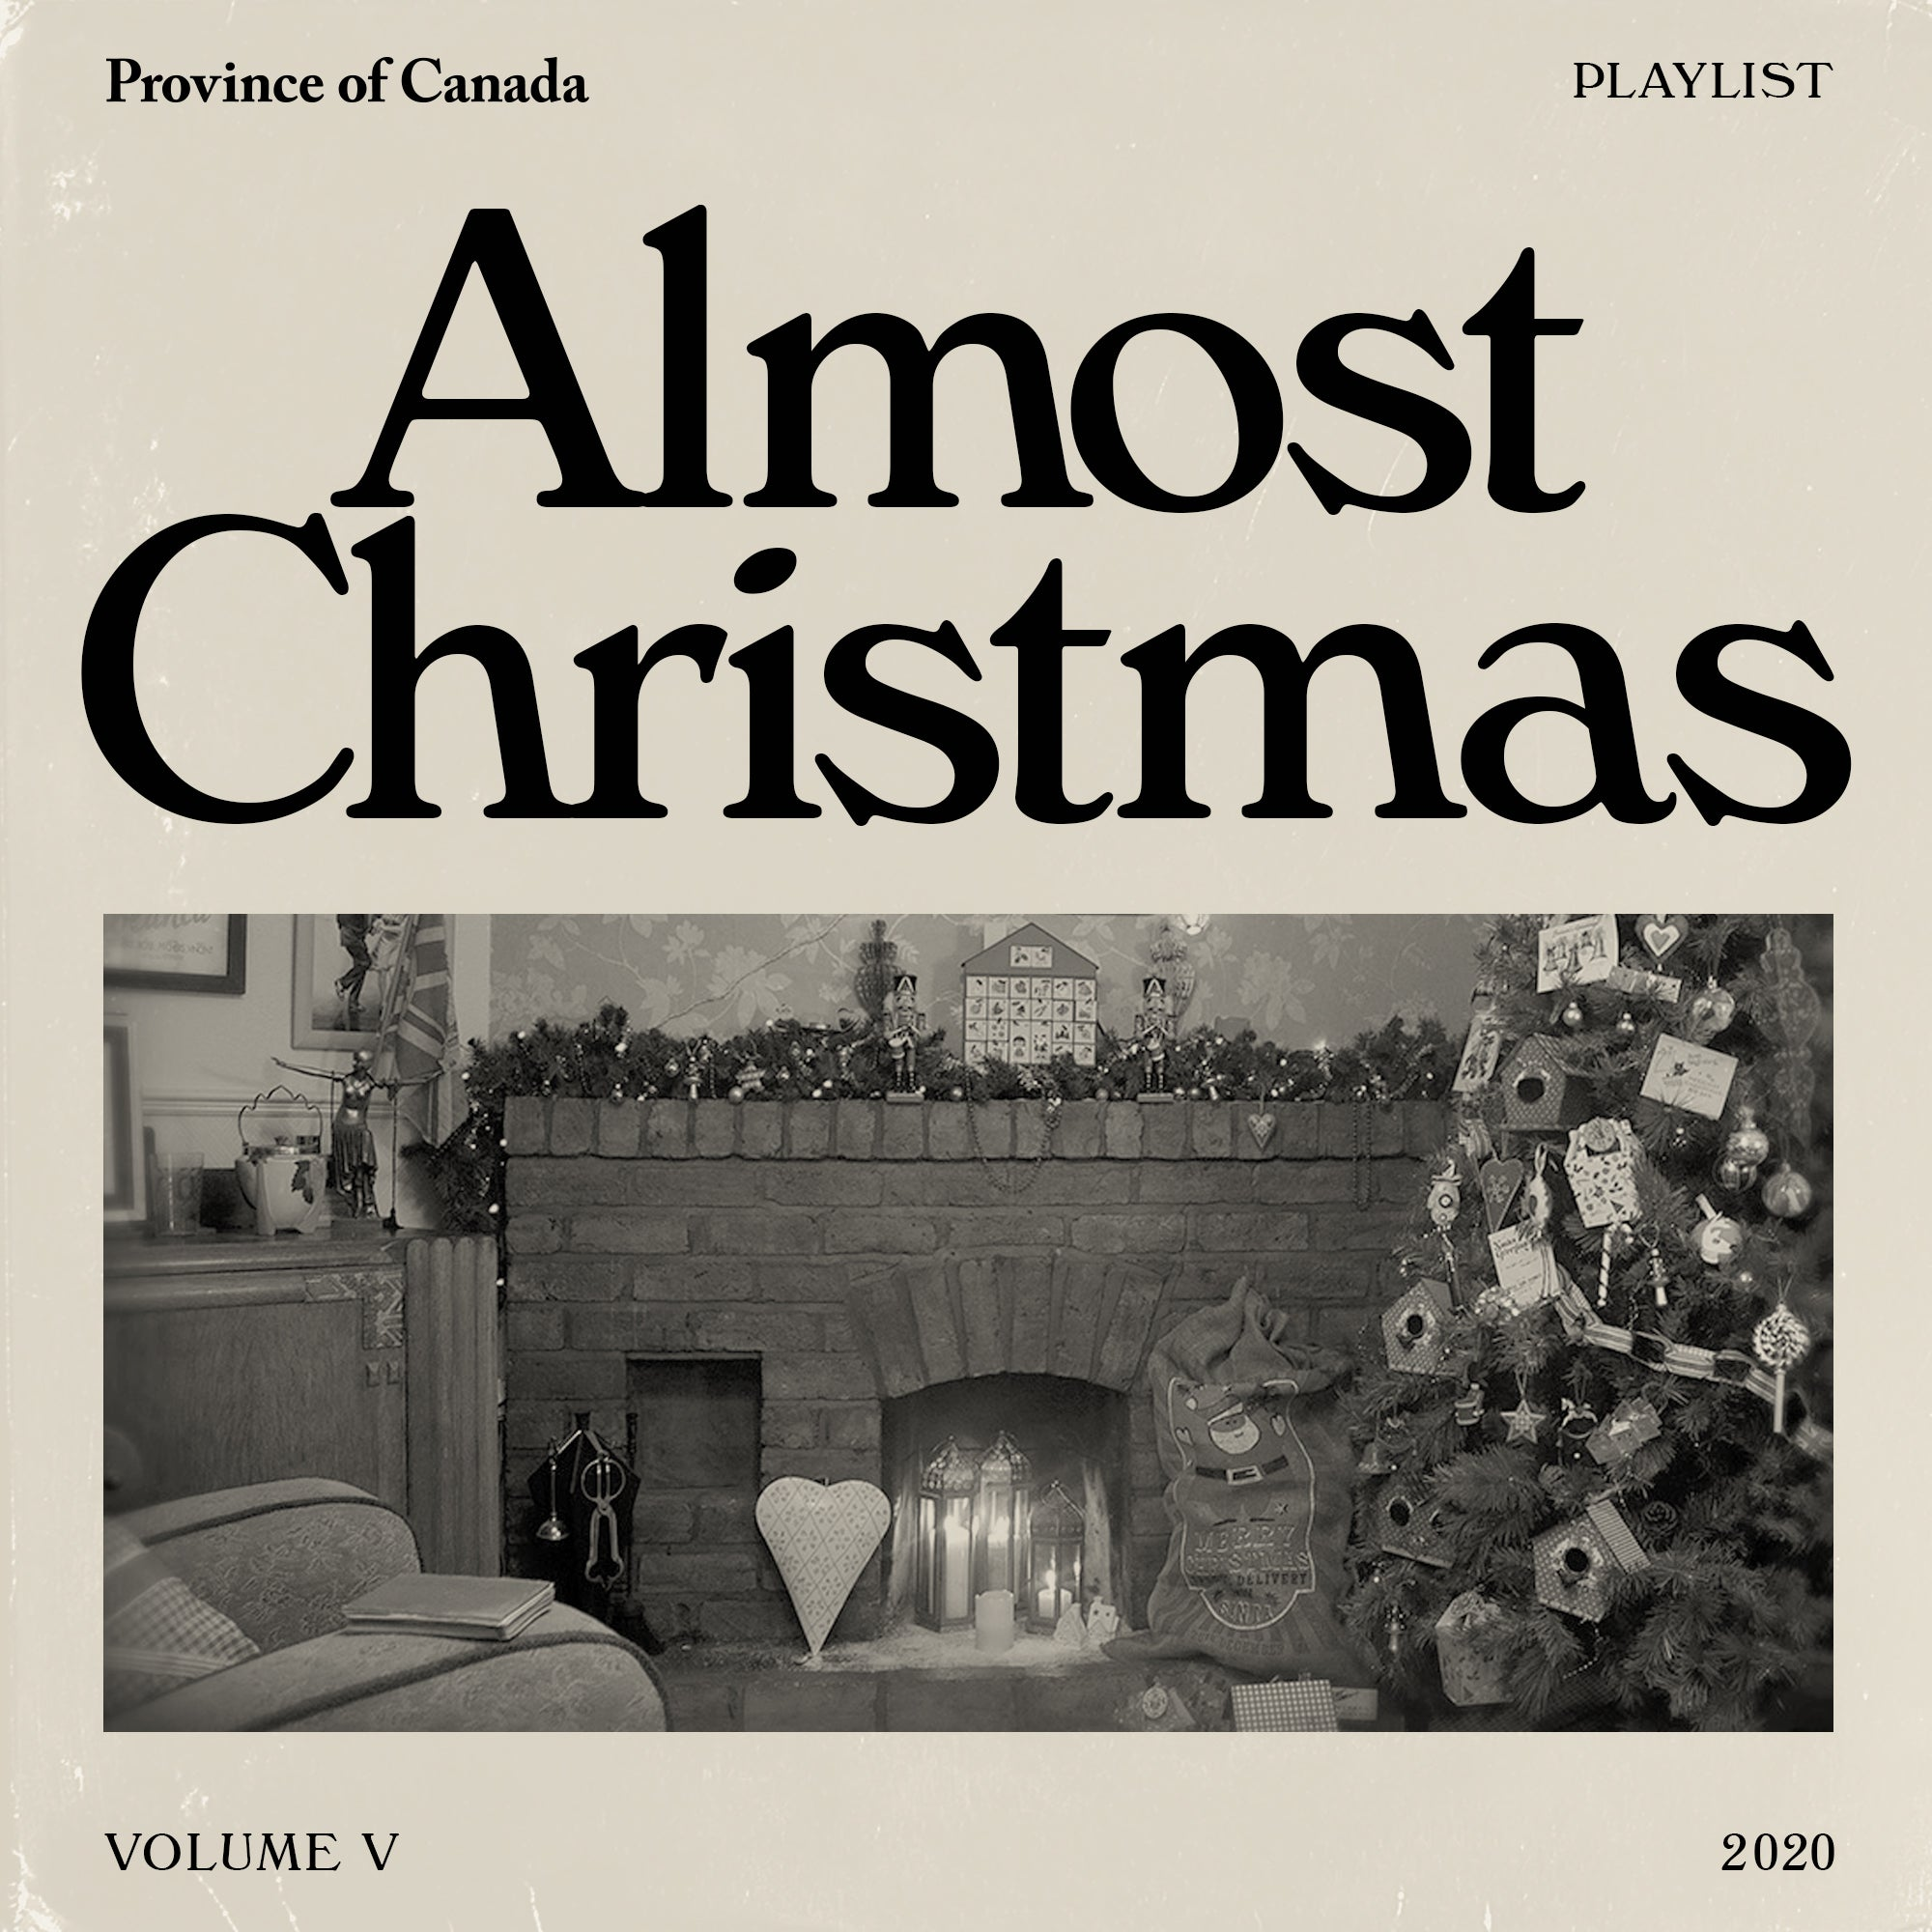 Province of Canada - Almost Christmas Vol. V